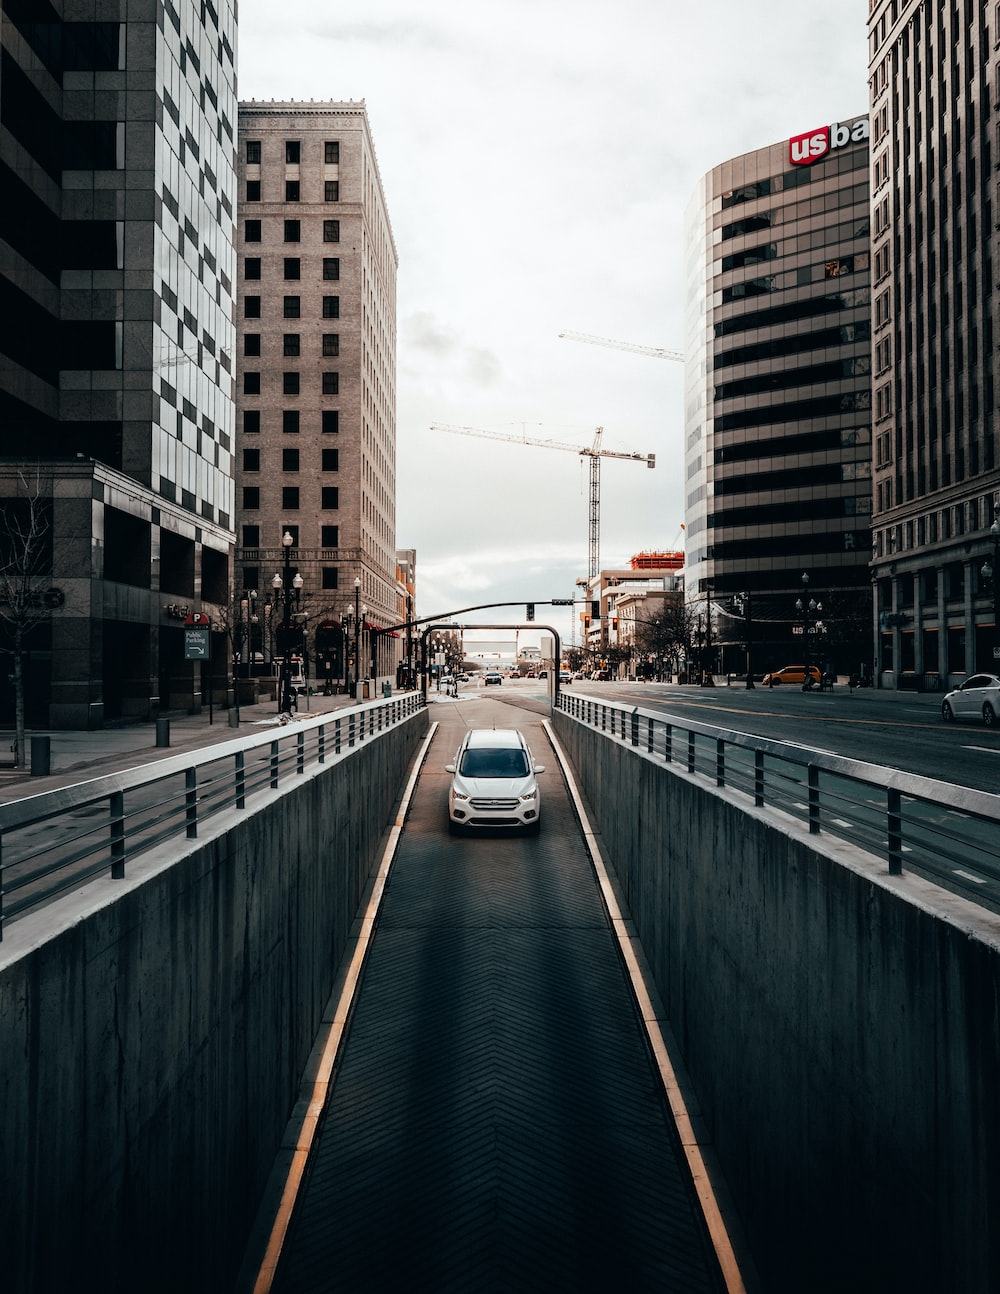 cars on road between buildings during daytime